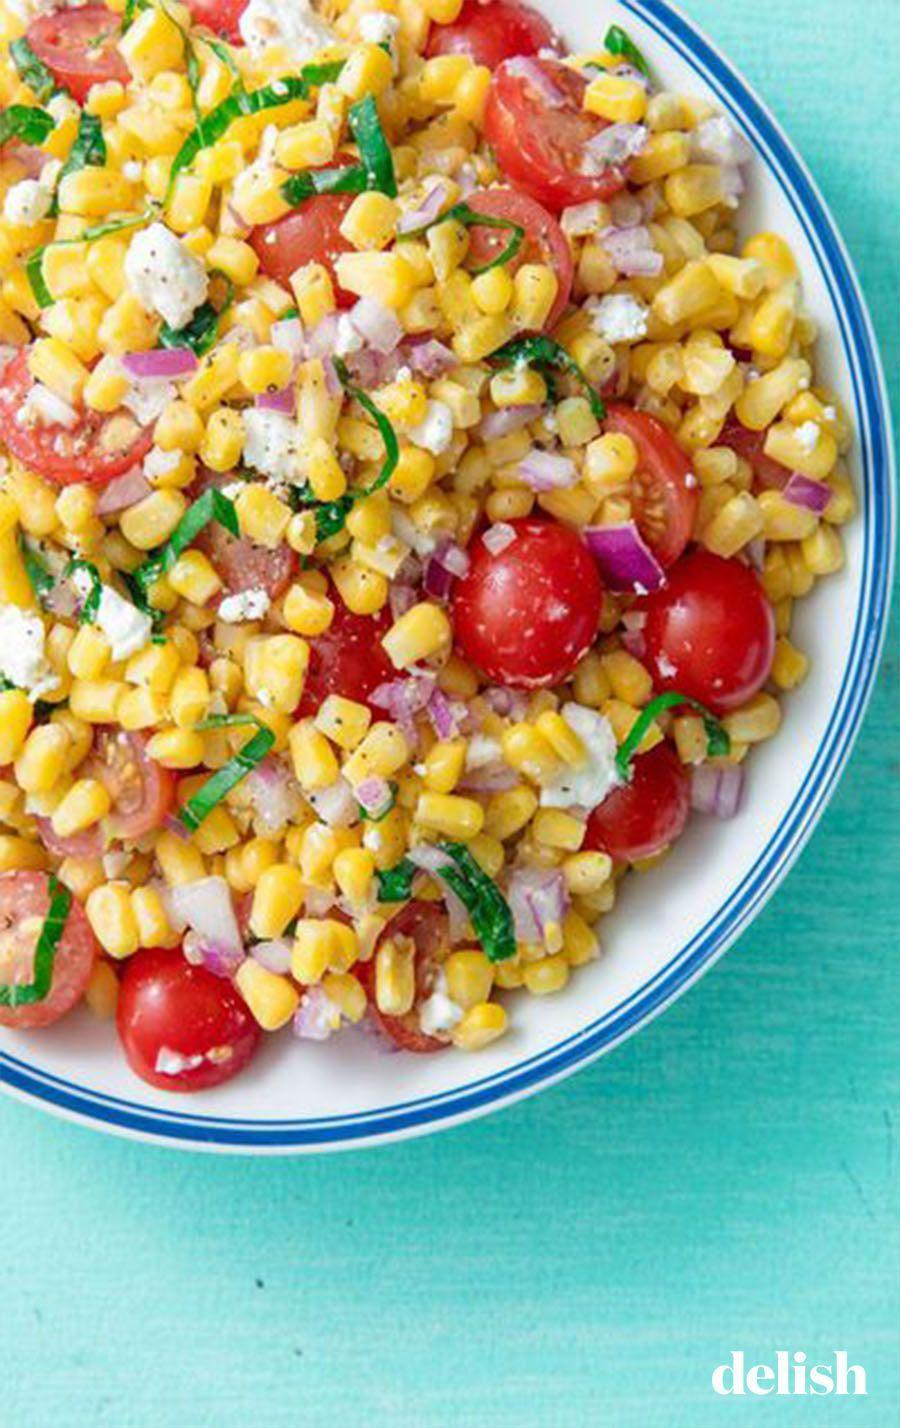 """<p>It's not summer without fresh corn.</p><p>Get the recipe from <a href=""""https://www.delish.com/cooking/recipe-ideas/a19695472/easy-fresh-corn-salad-recipe/"""" rel=""""nofollow noopener"""" target=""""_blank"""" data-ylk=""""slk:Delish"""" class=""""link rapid-noclick-resp"""">Delish</a>.</p>"""